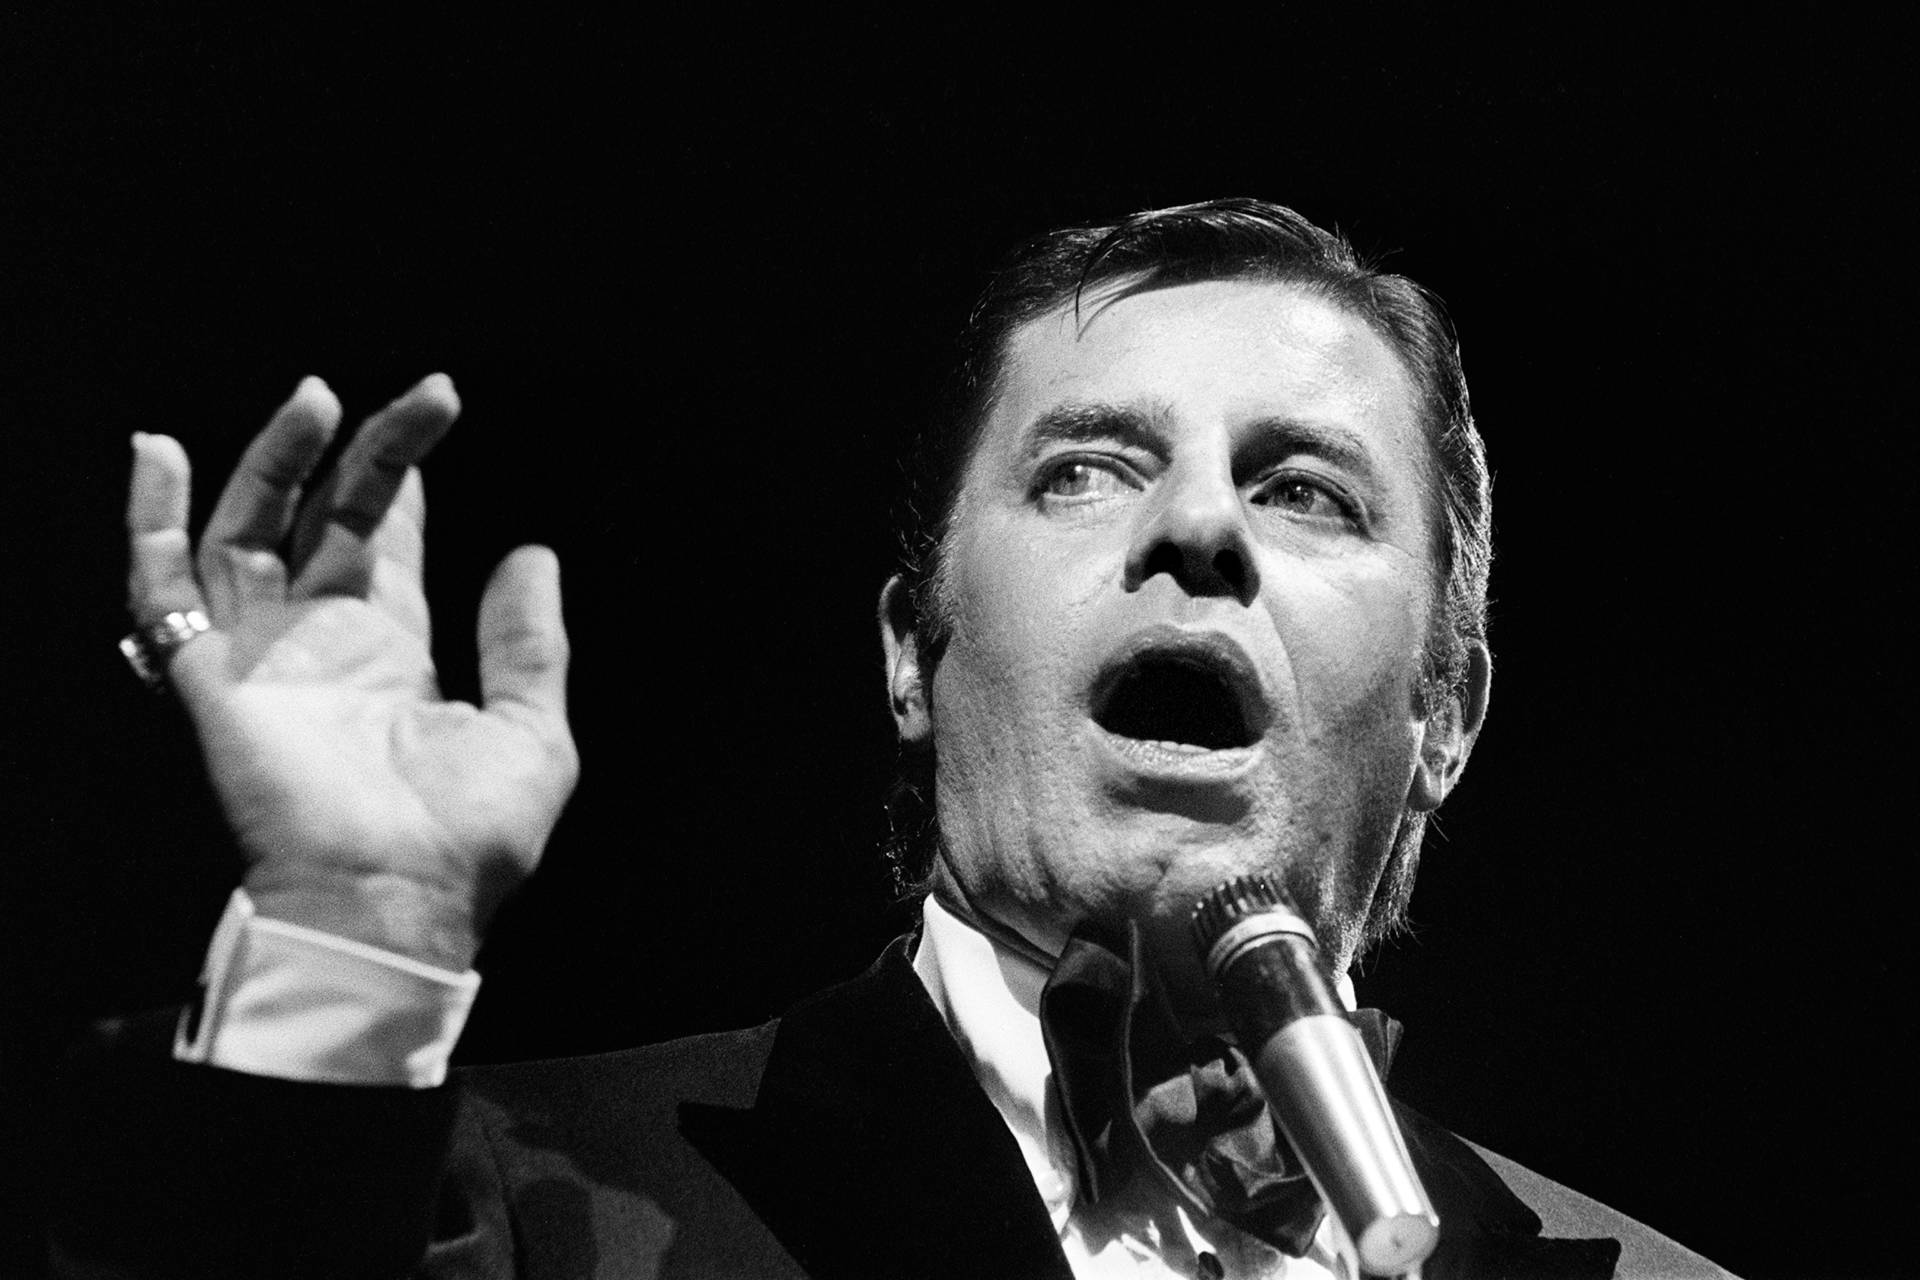 Jerry Lewis performs in Paris in 1976. Lewis, who appeared in dozens of films throughout his career, was perhaps nowhere more critically acclaimed than in France, where he earned the country's highest civilian honor. Photo: STF/AFP/Getty Images